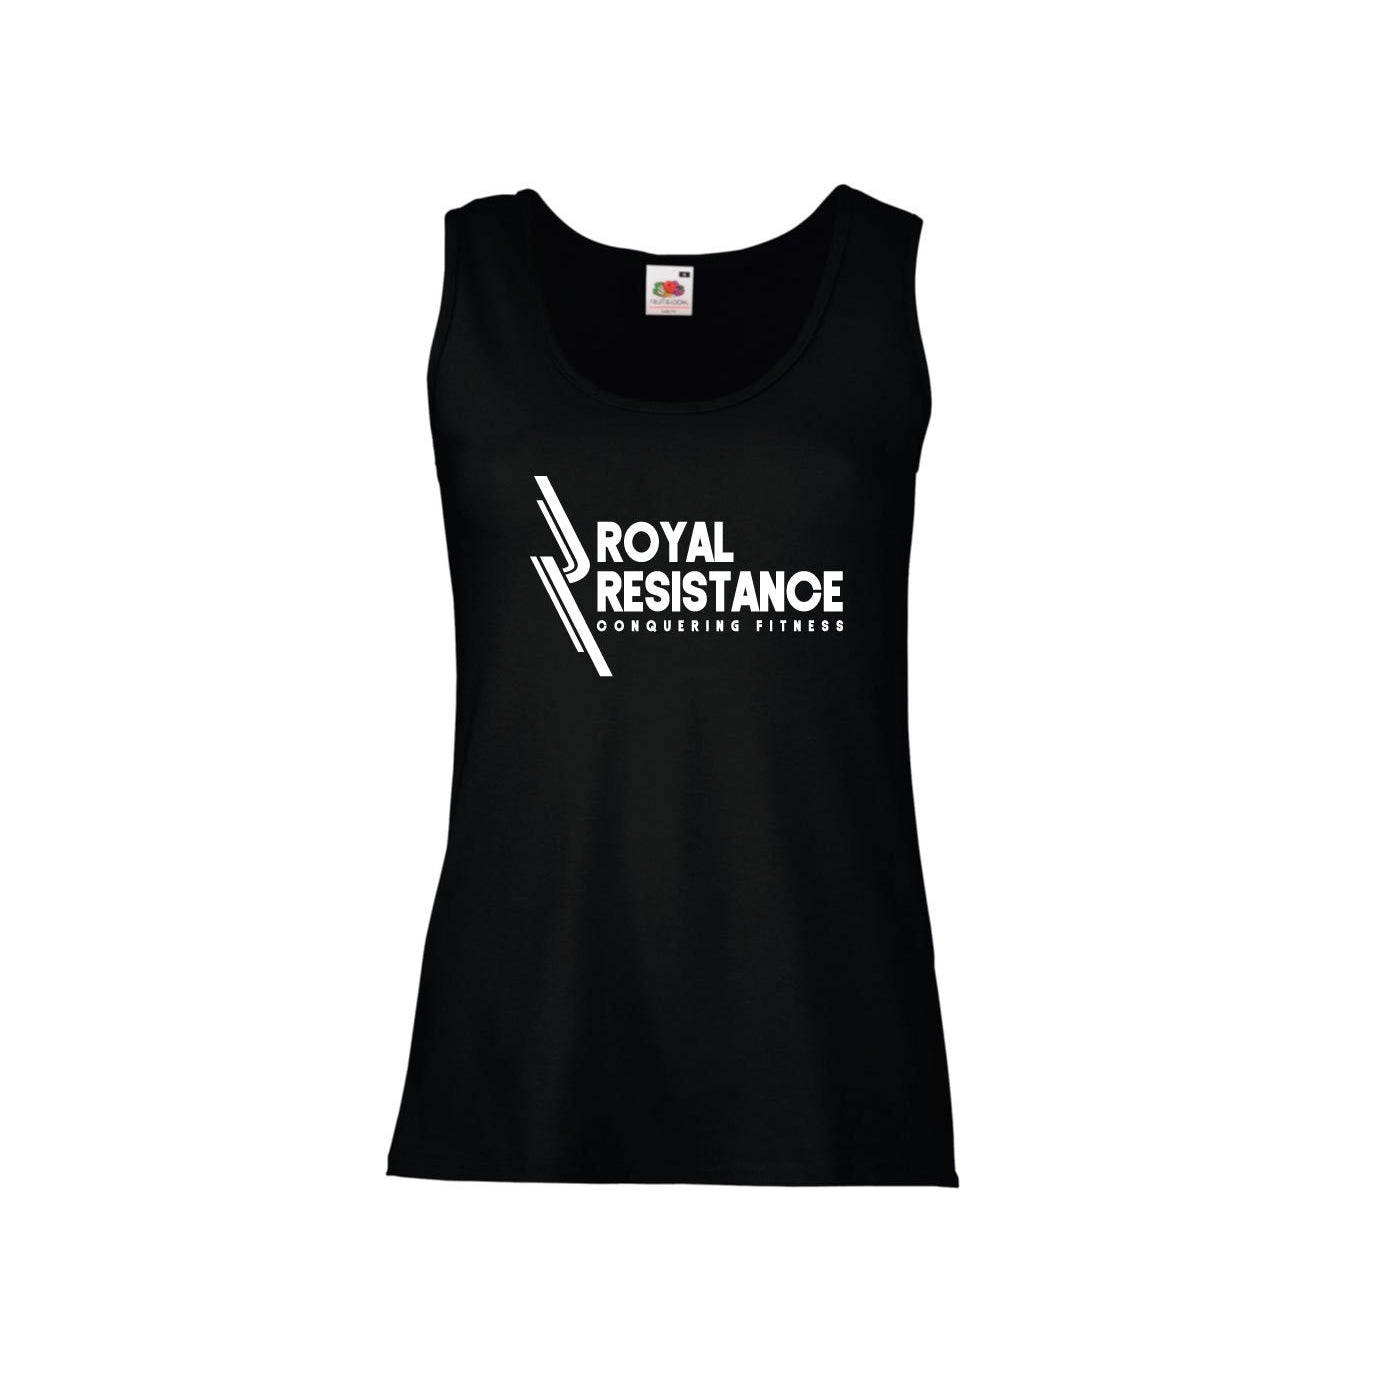 Royal Resistance Clothing